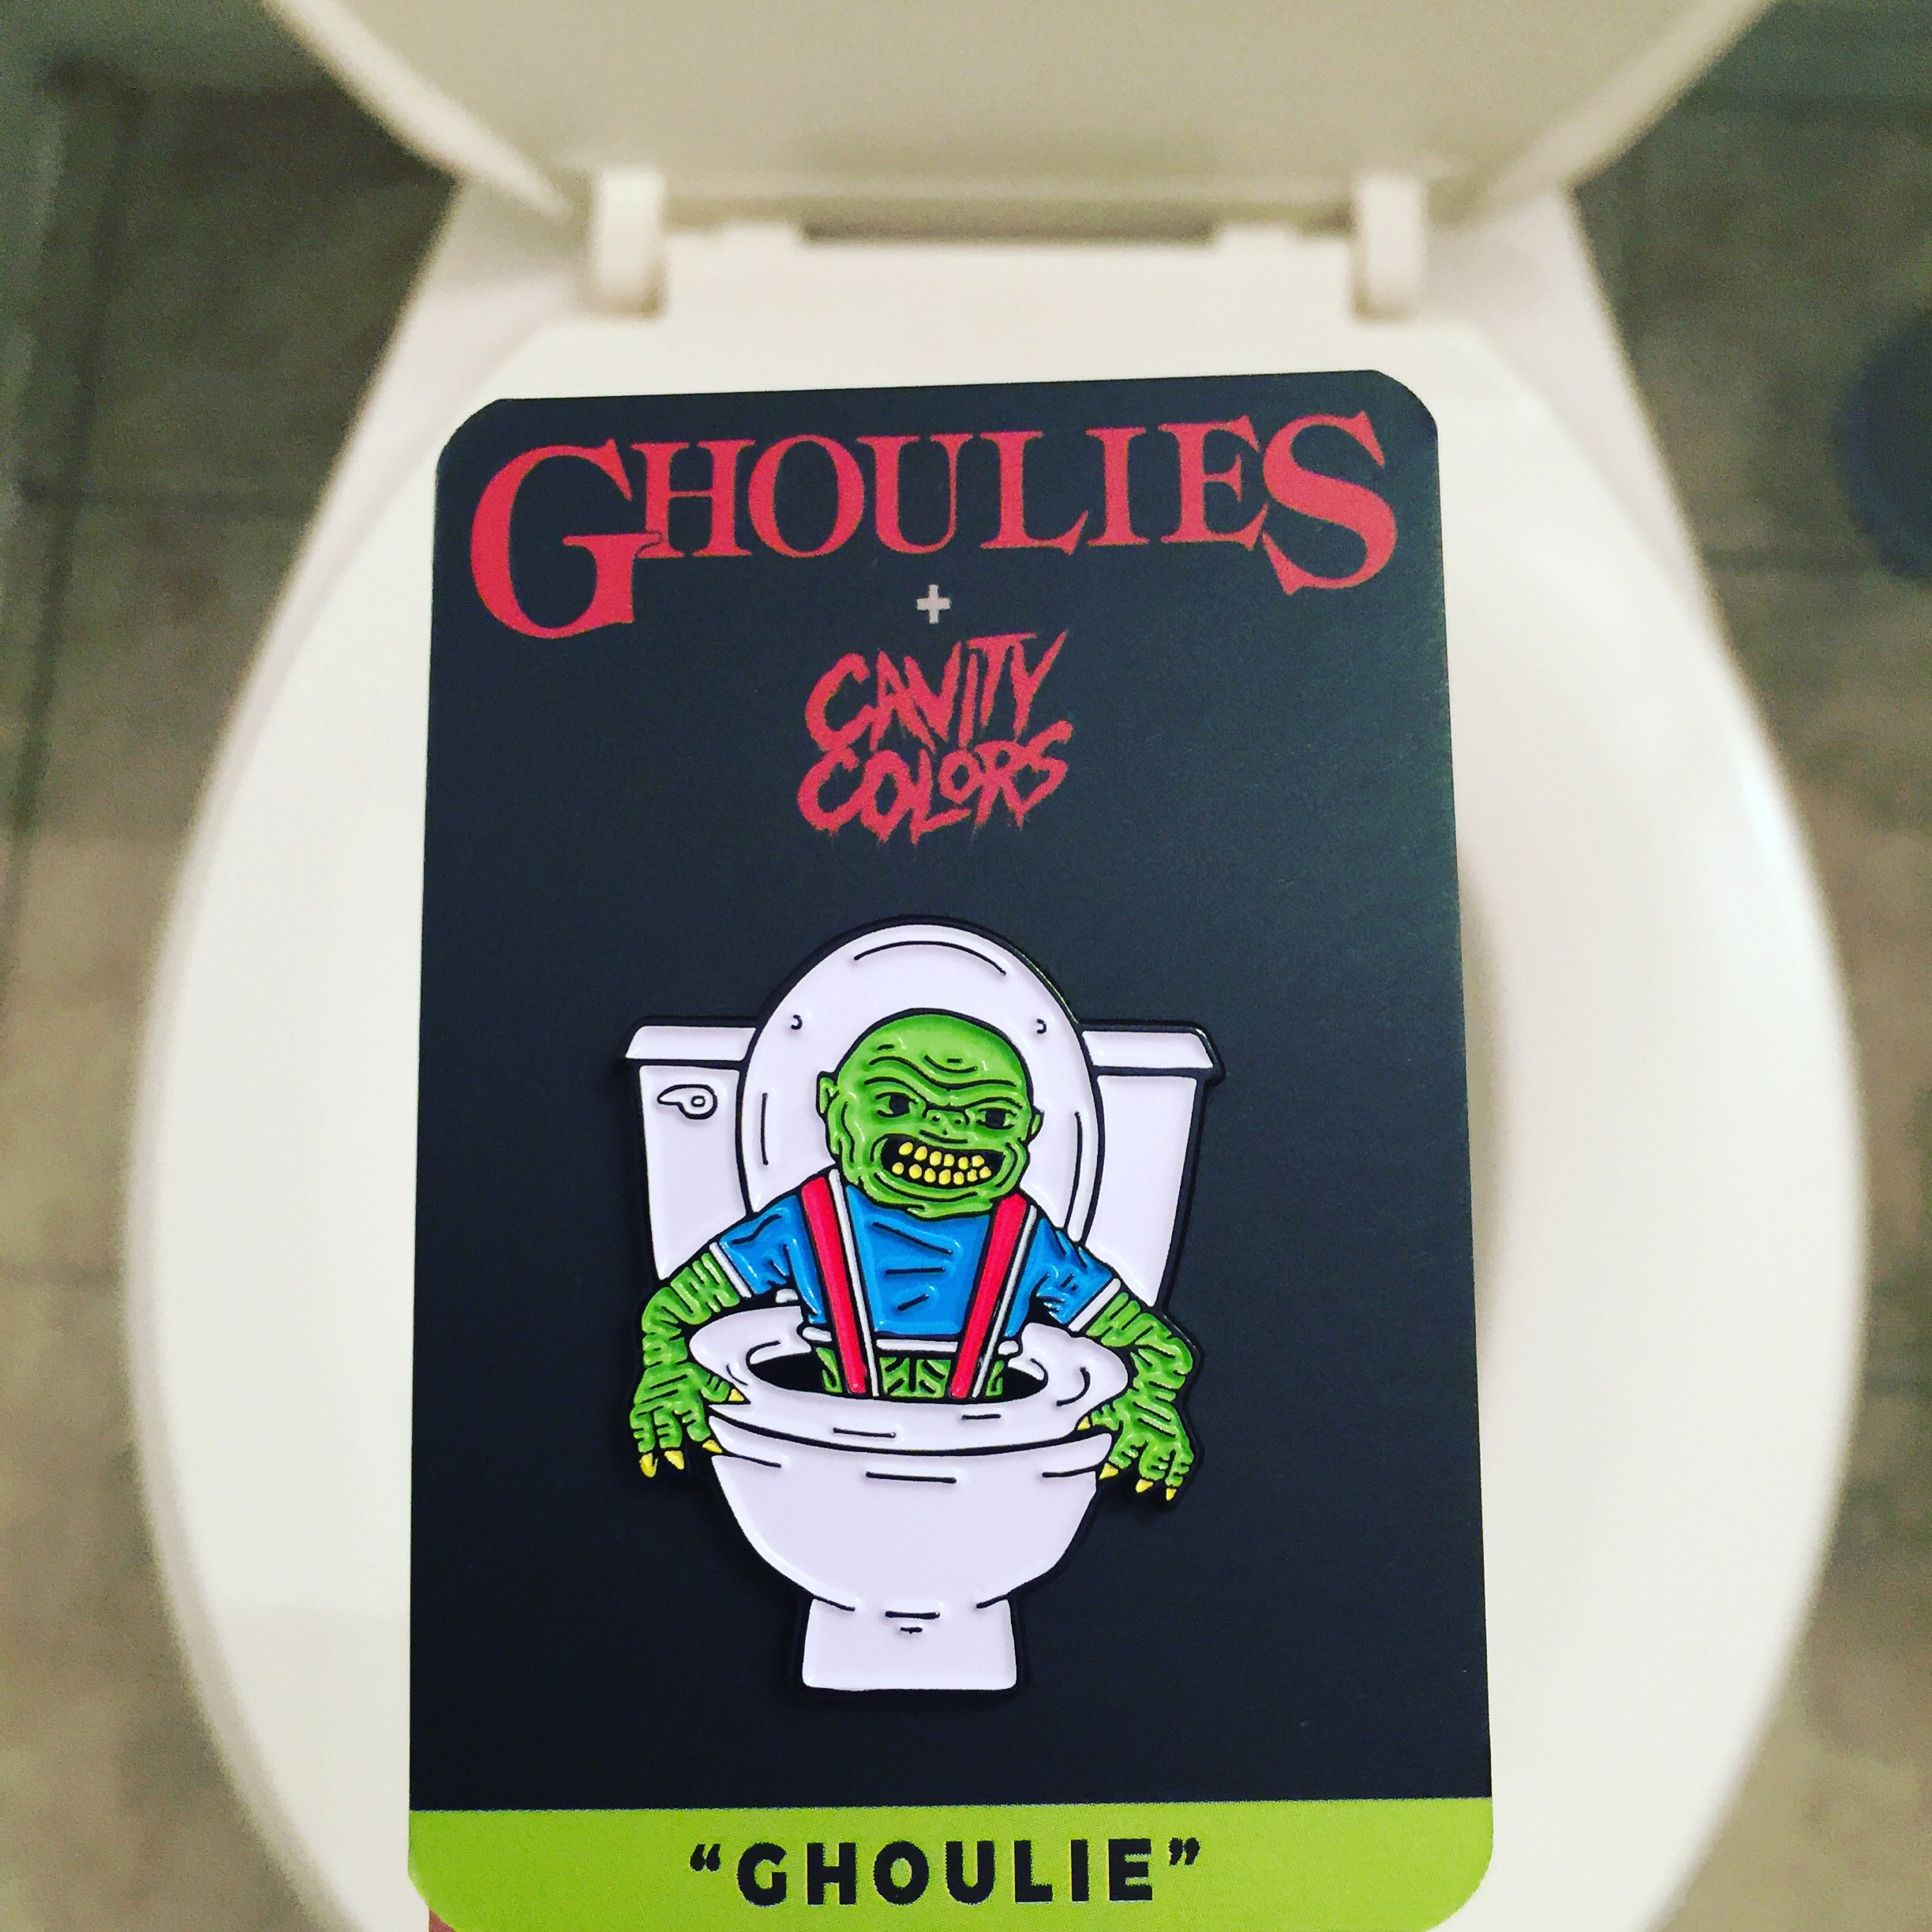 THEY'LL GET YOU IN THE END!  We are proud to present our officially licensed GHOULIES merch!  This one features a rendition of the classic VHS box art image, in ENAMEL PIN form!      LIMITED EDITION OF 300 ENAMEL PINS - NO RE-STOCKS ON THIS PIN, EVER!     - 1.5 inches tall  - Soft Enamel pin with a shiny black finish - Double rubber clutch on the back for secure attachment - Cavitycolors logo stamp on the back - Pin comes attached to a custom backing card  ART BY : Bruce Parker & Aaron Crawford